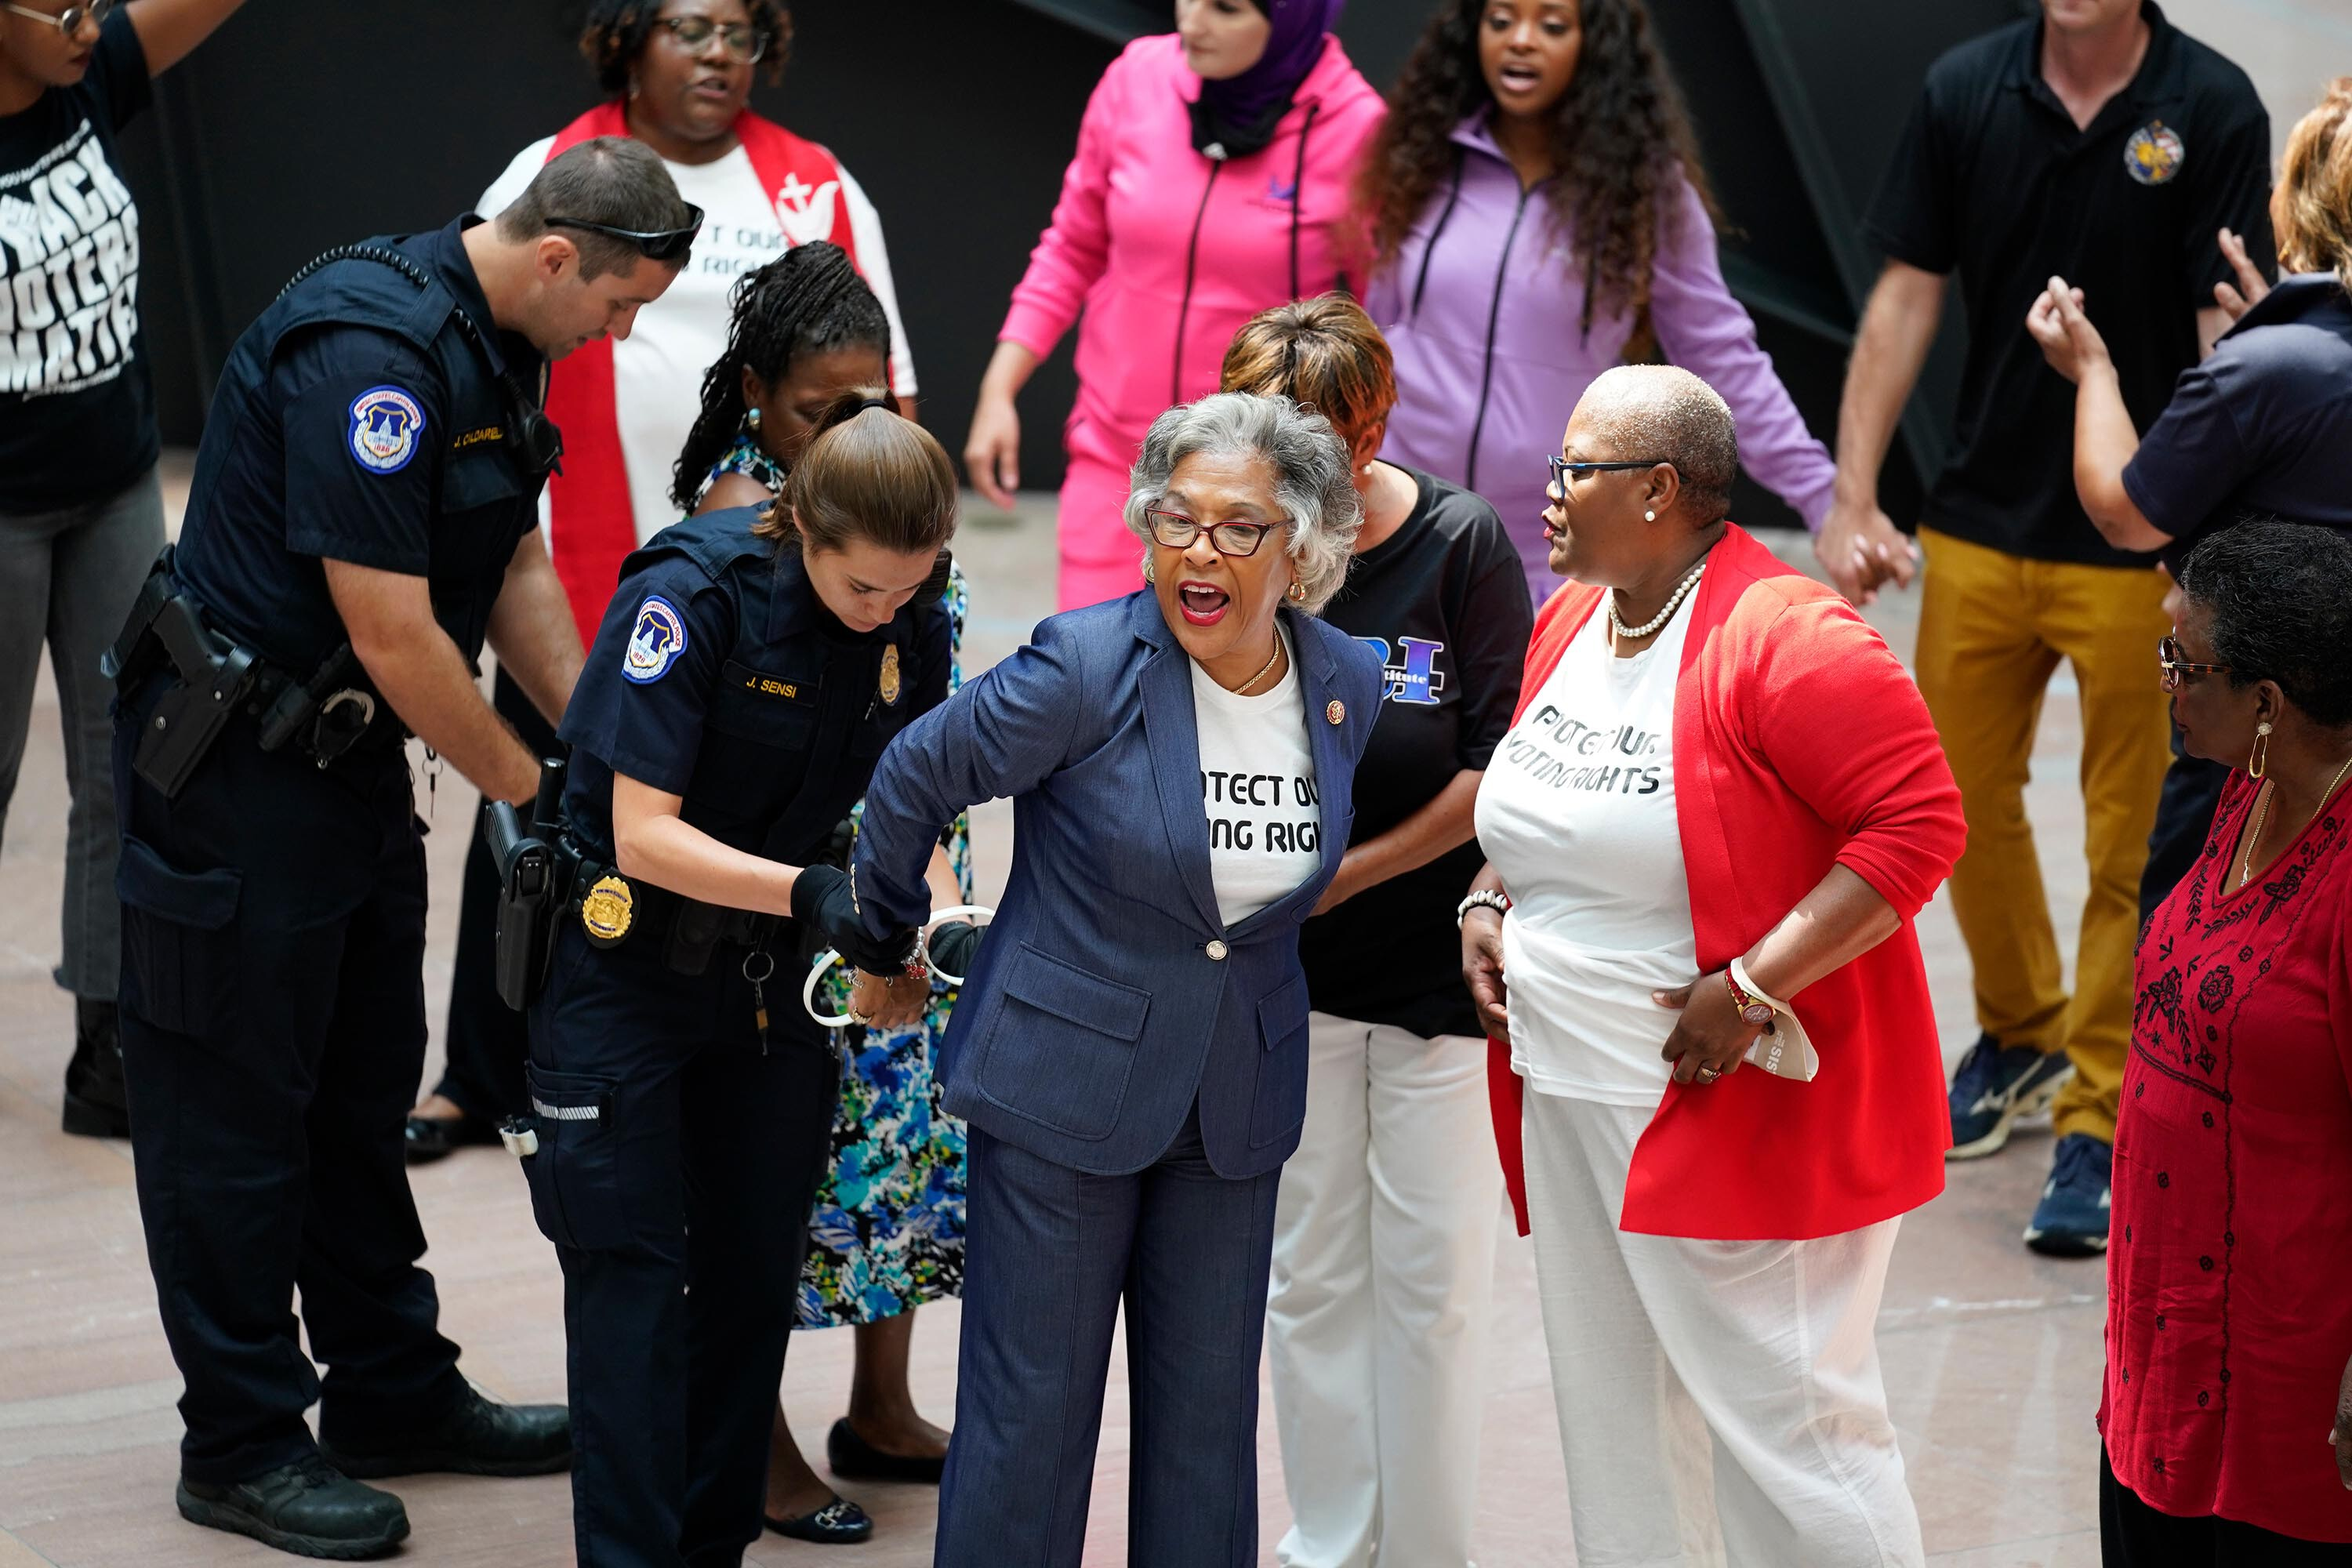 Congressional Black Caucus Chair Joyce Beatty arrested at voting rights protest